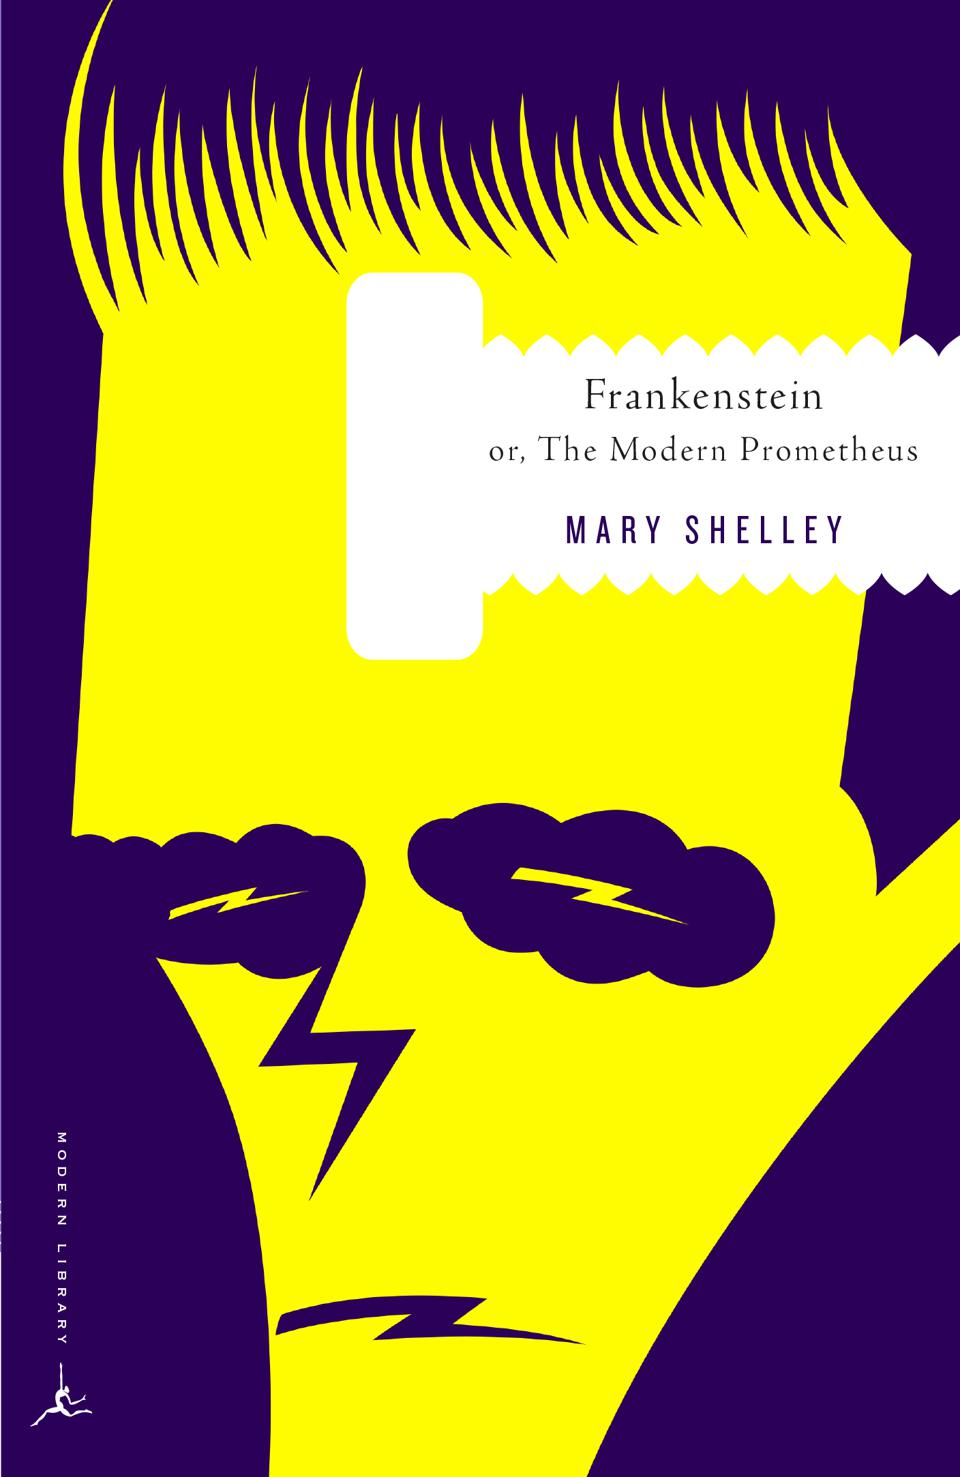 mary shelley modern prometheus frankenstein book cover emily mahon modern library classics